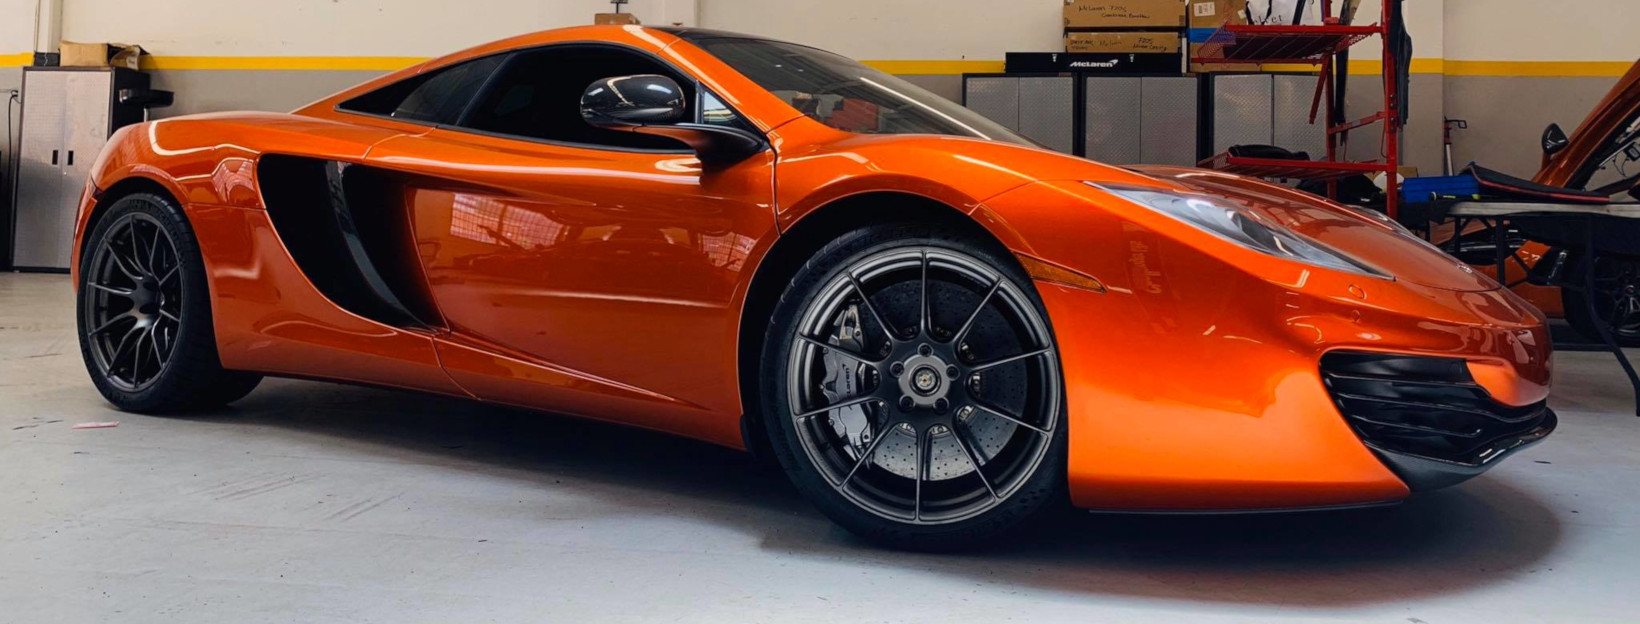 McLaren 12C Monoblock Forged Motorsports Wheels Finspeed F100 Satin Charcoal